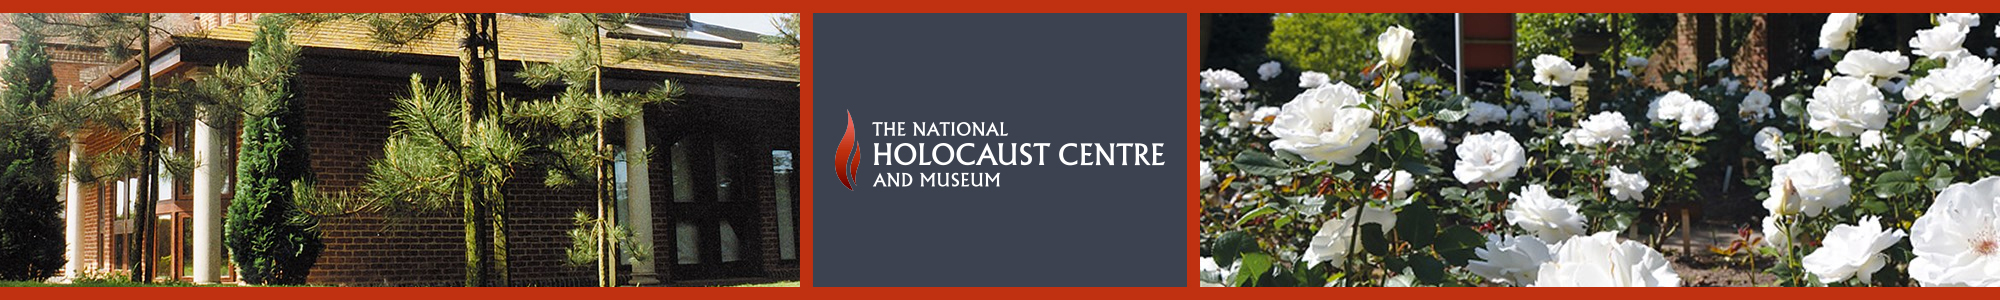 National Holocaust Centre and Museum